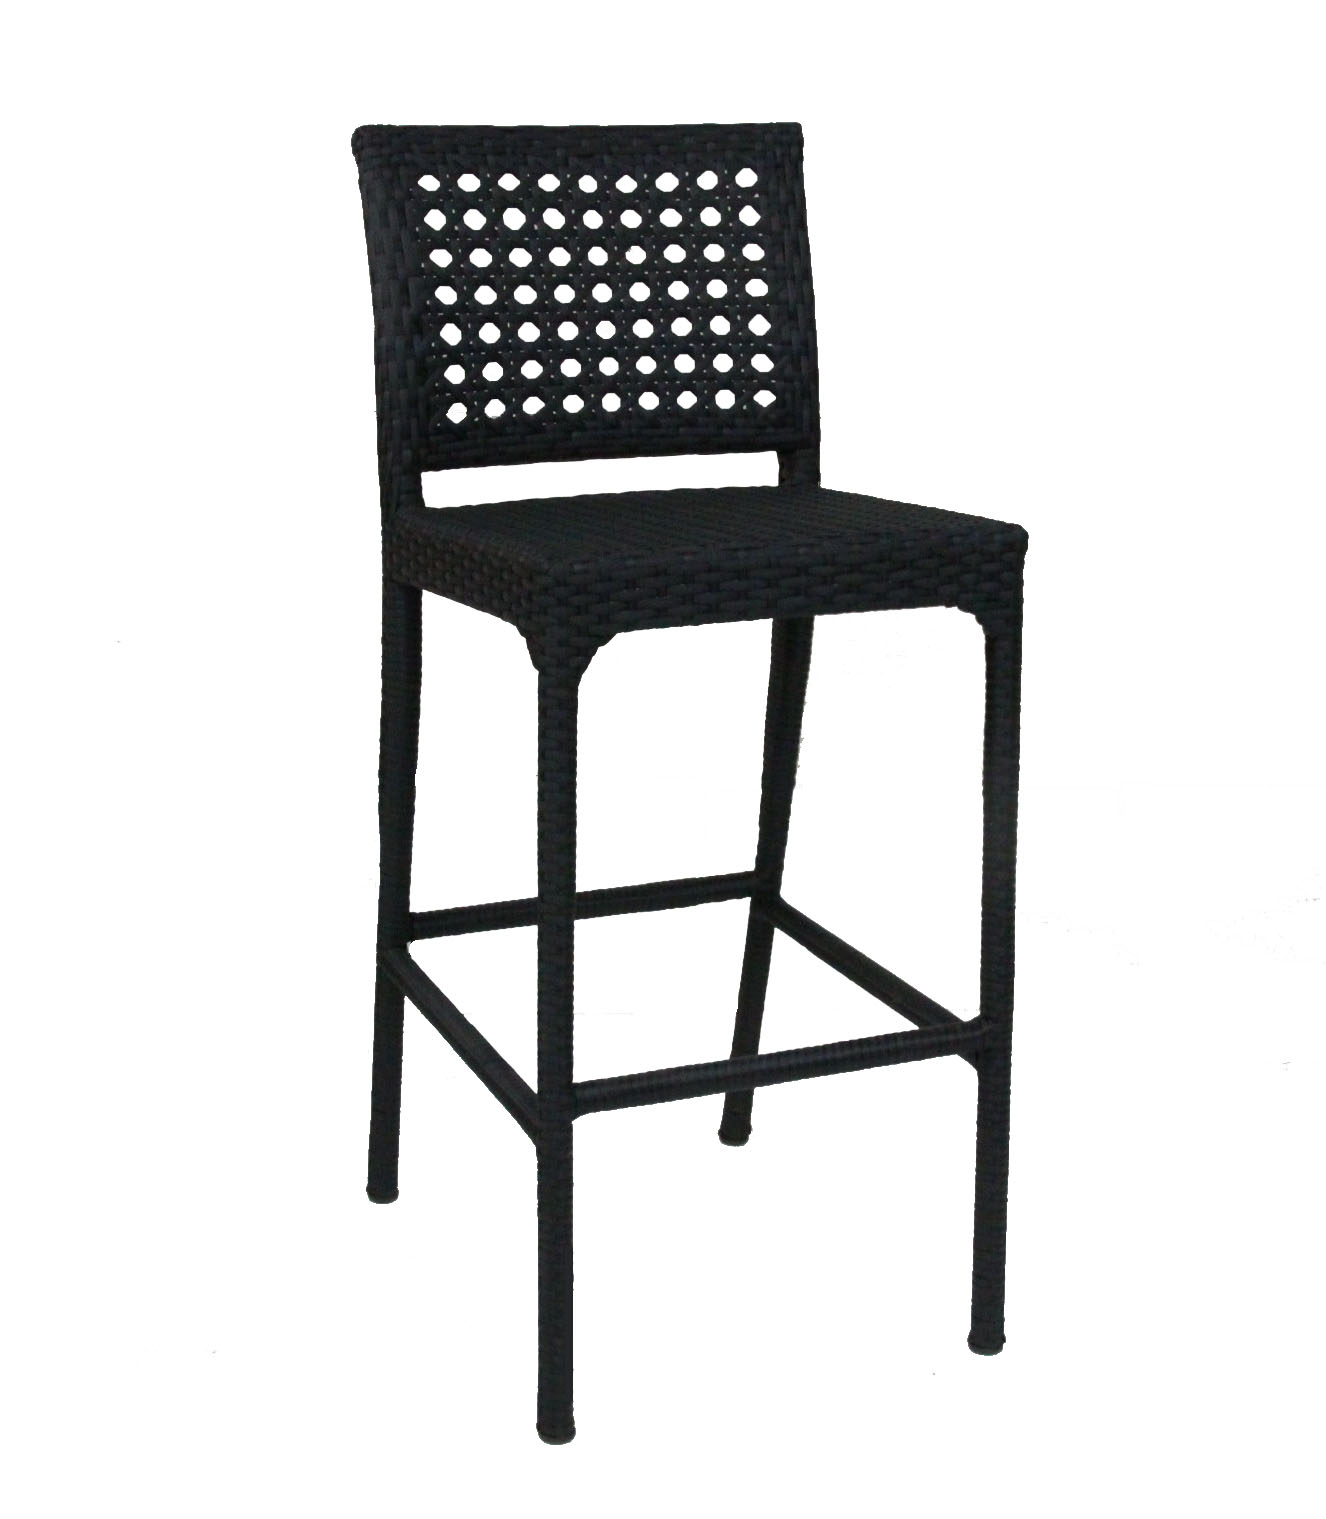 Hudson Bar Chair General Products Outdoor Patio Furniture Serving Our Cus